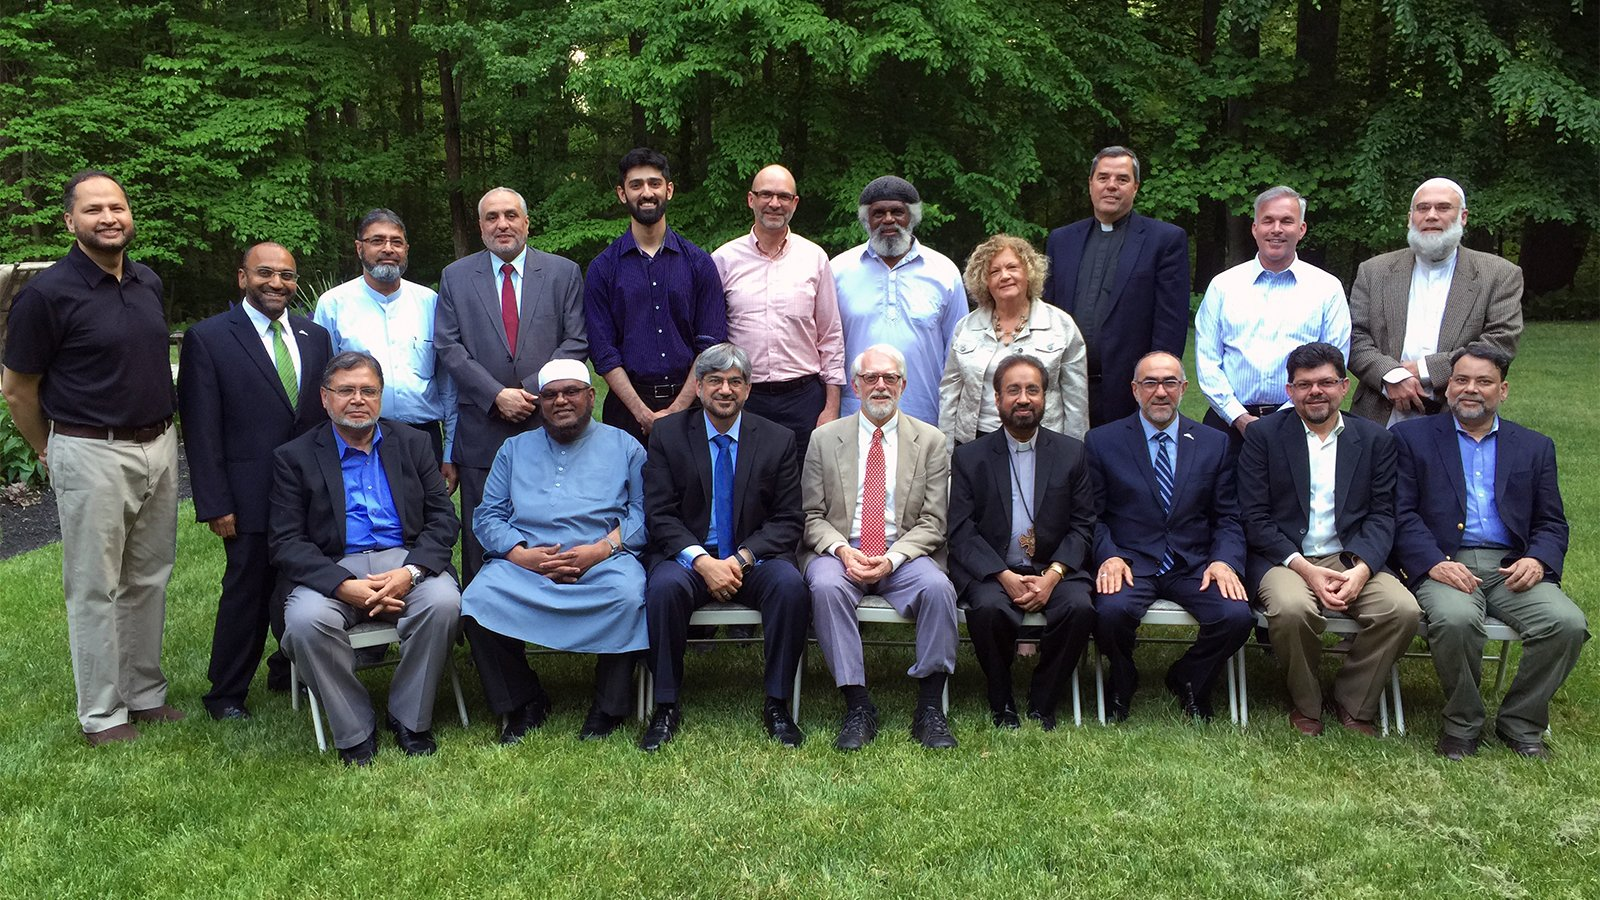 Participants pose for a photo during an interfaith meeting of the National Council of Churches and the US Council of Muslim Organizations. Photo courtesy of Imam Naeem Baig